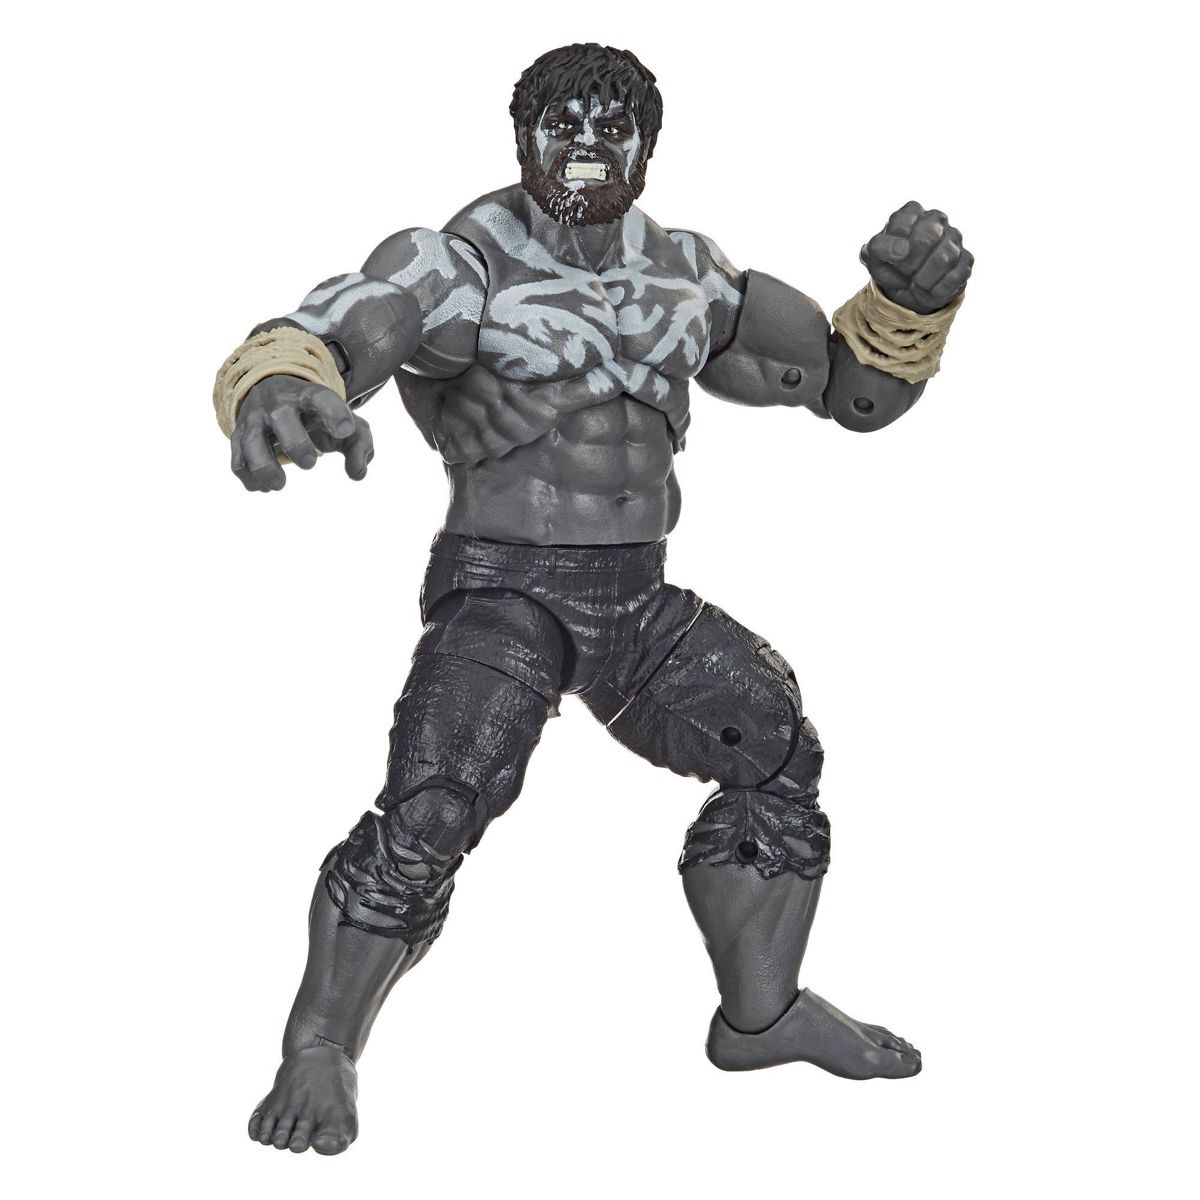 Pin By F1r3k1r1n On Marvel Legends In 2021 Marvel Legends Figures Marvel Legends Marvel Series